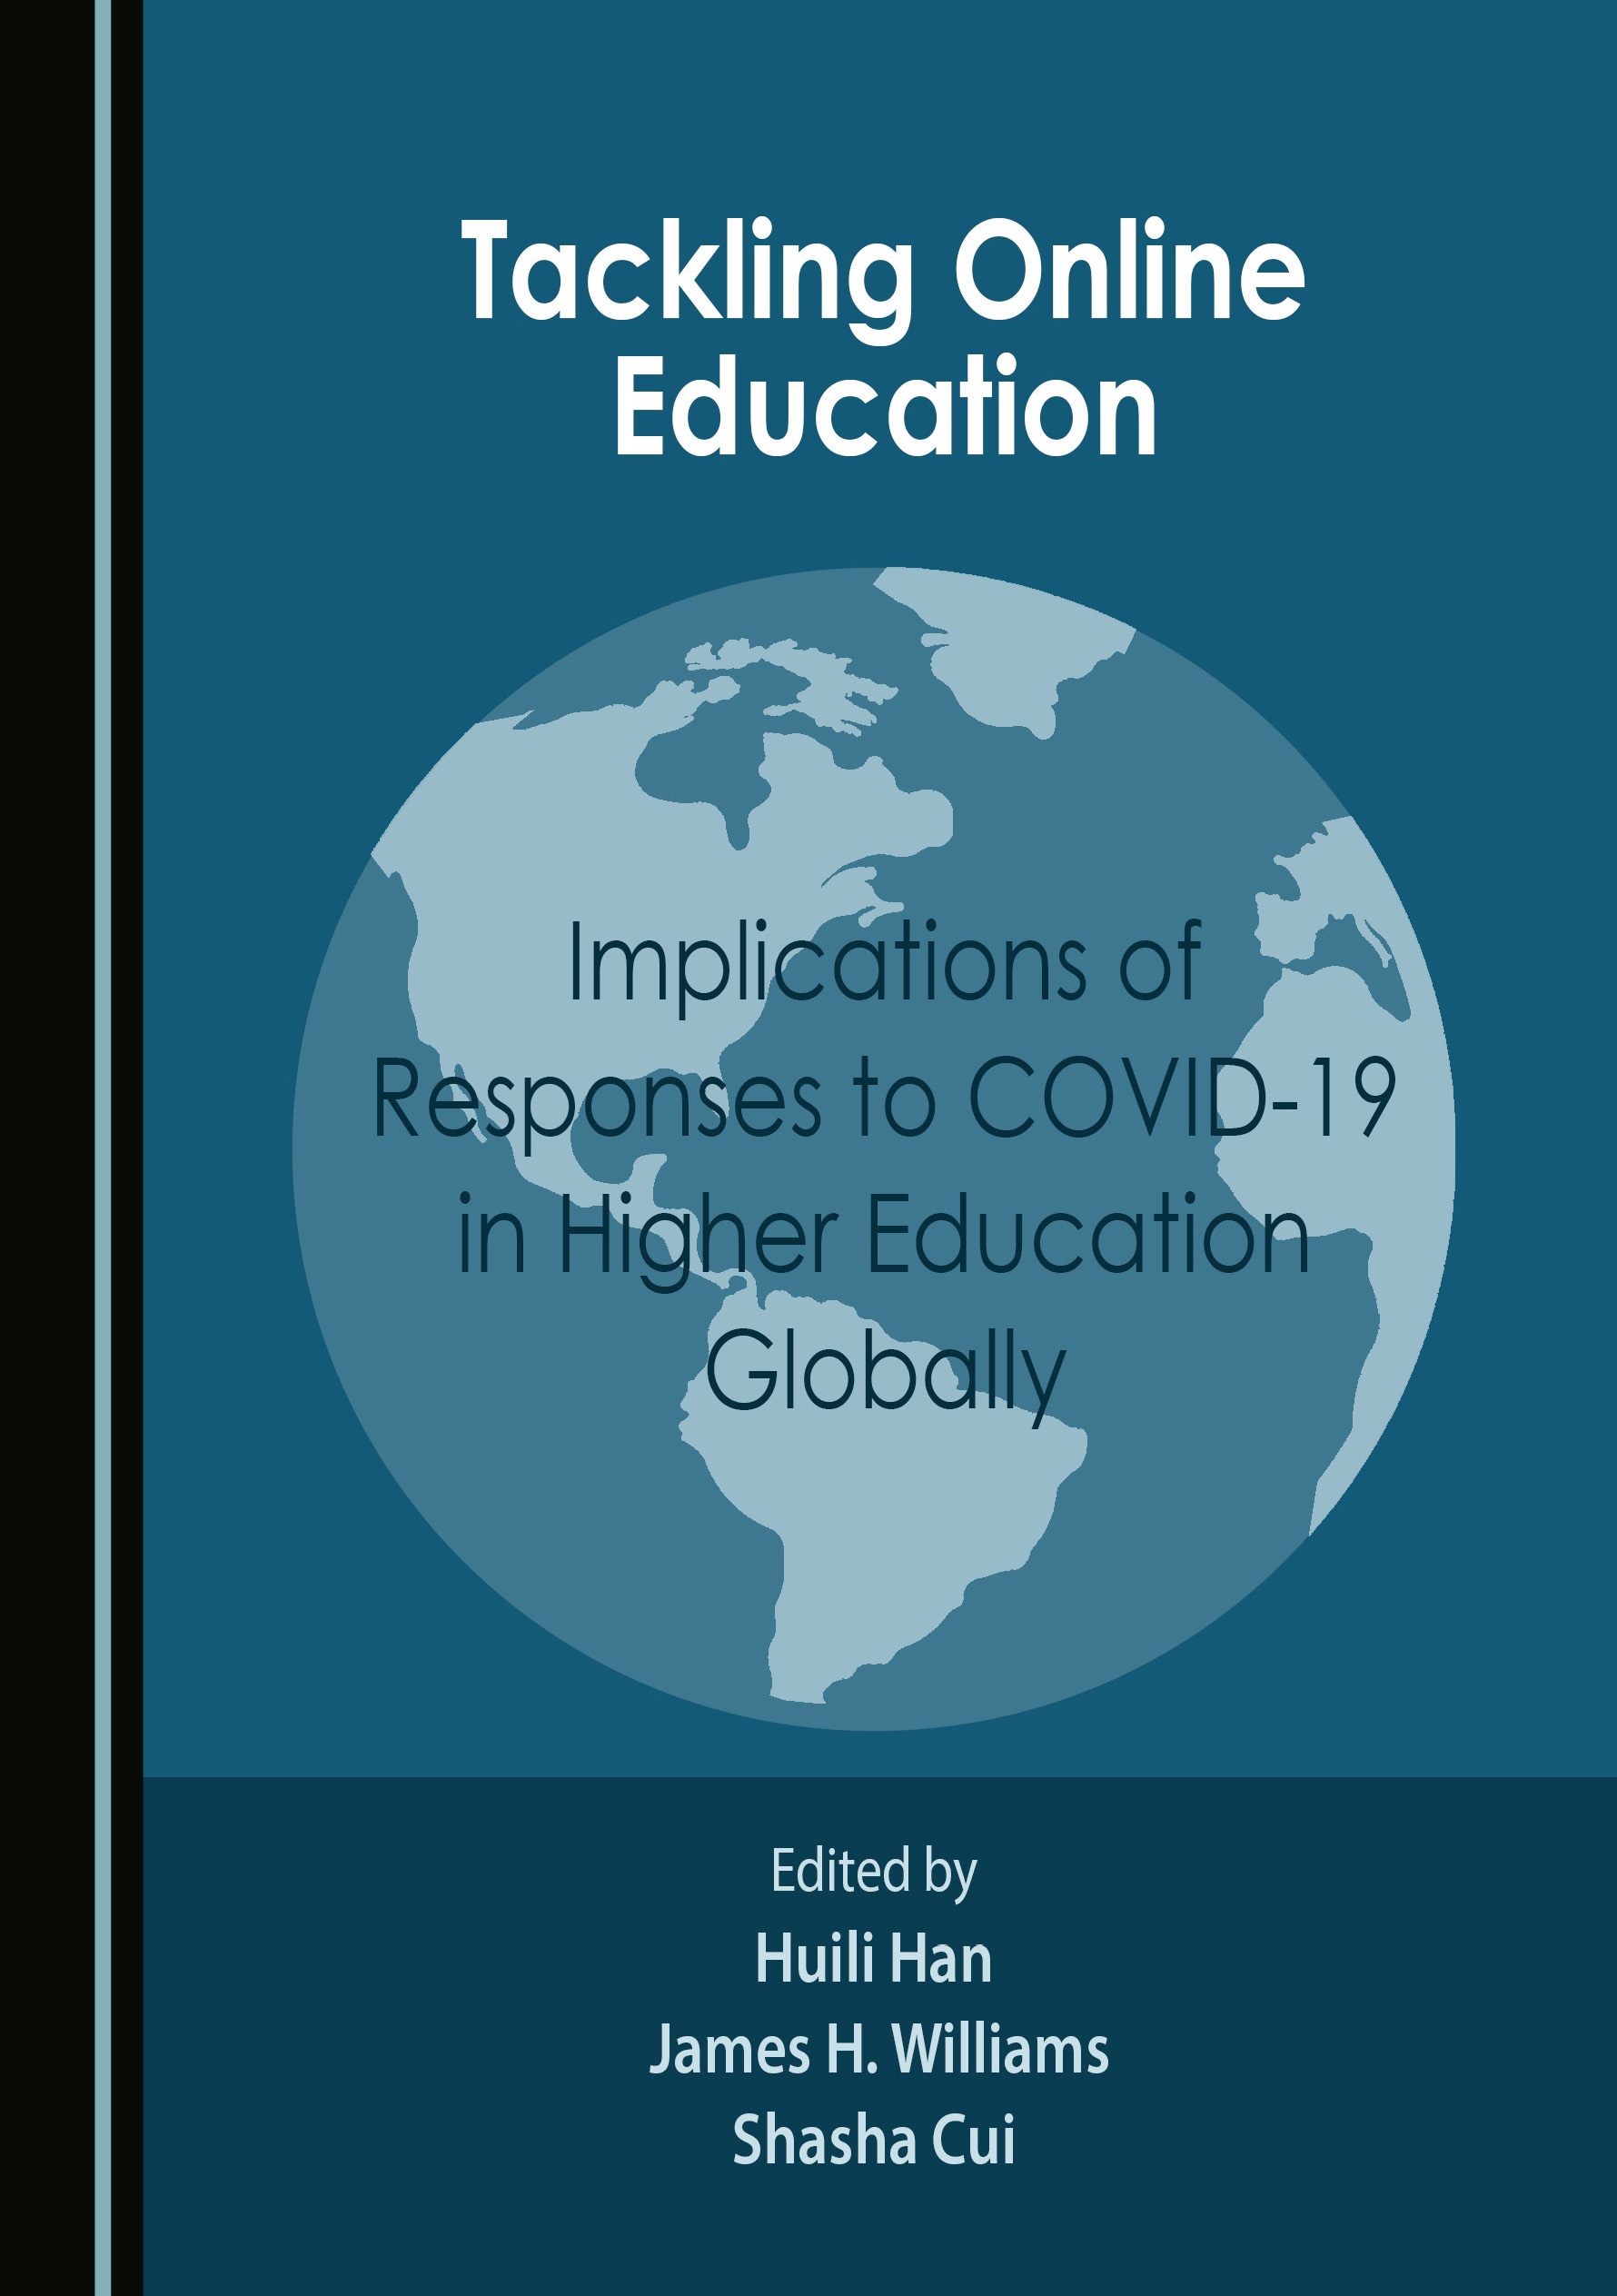 Tackling Online Education: Implications of Responses to COVID-19 in Higher Education Globally